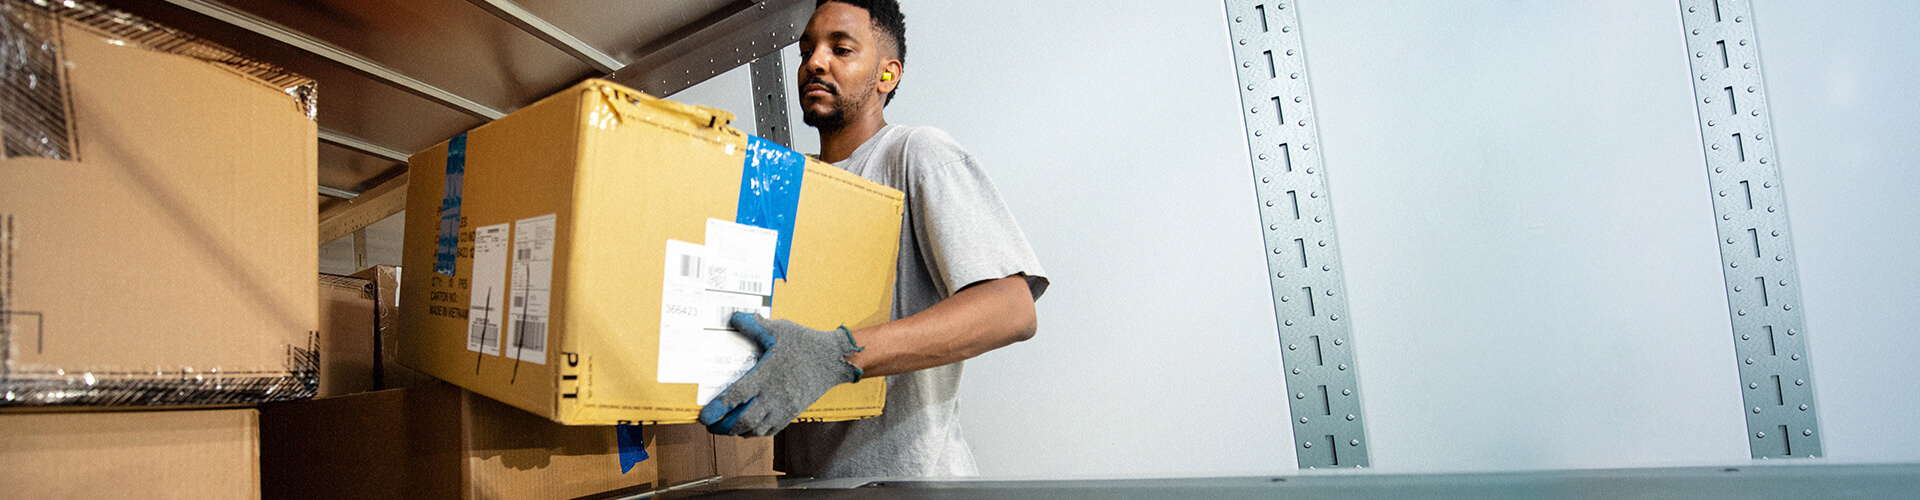 Search Our Job Opportunities At United Parcel Service Ups